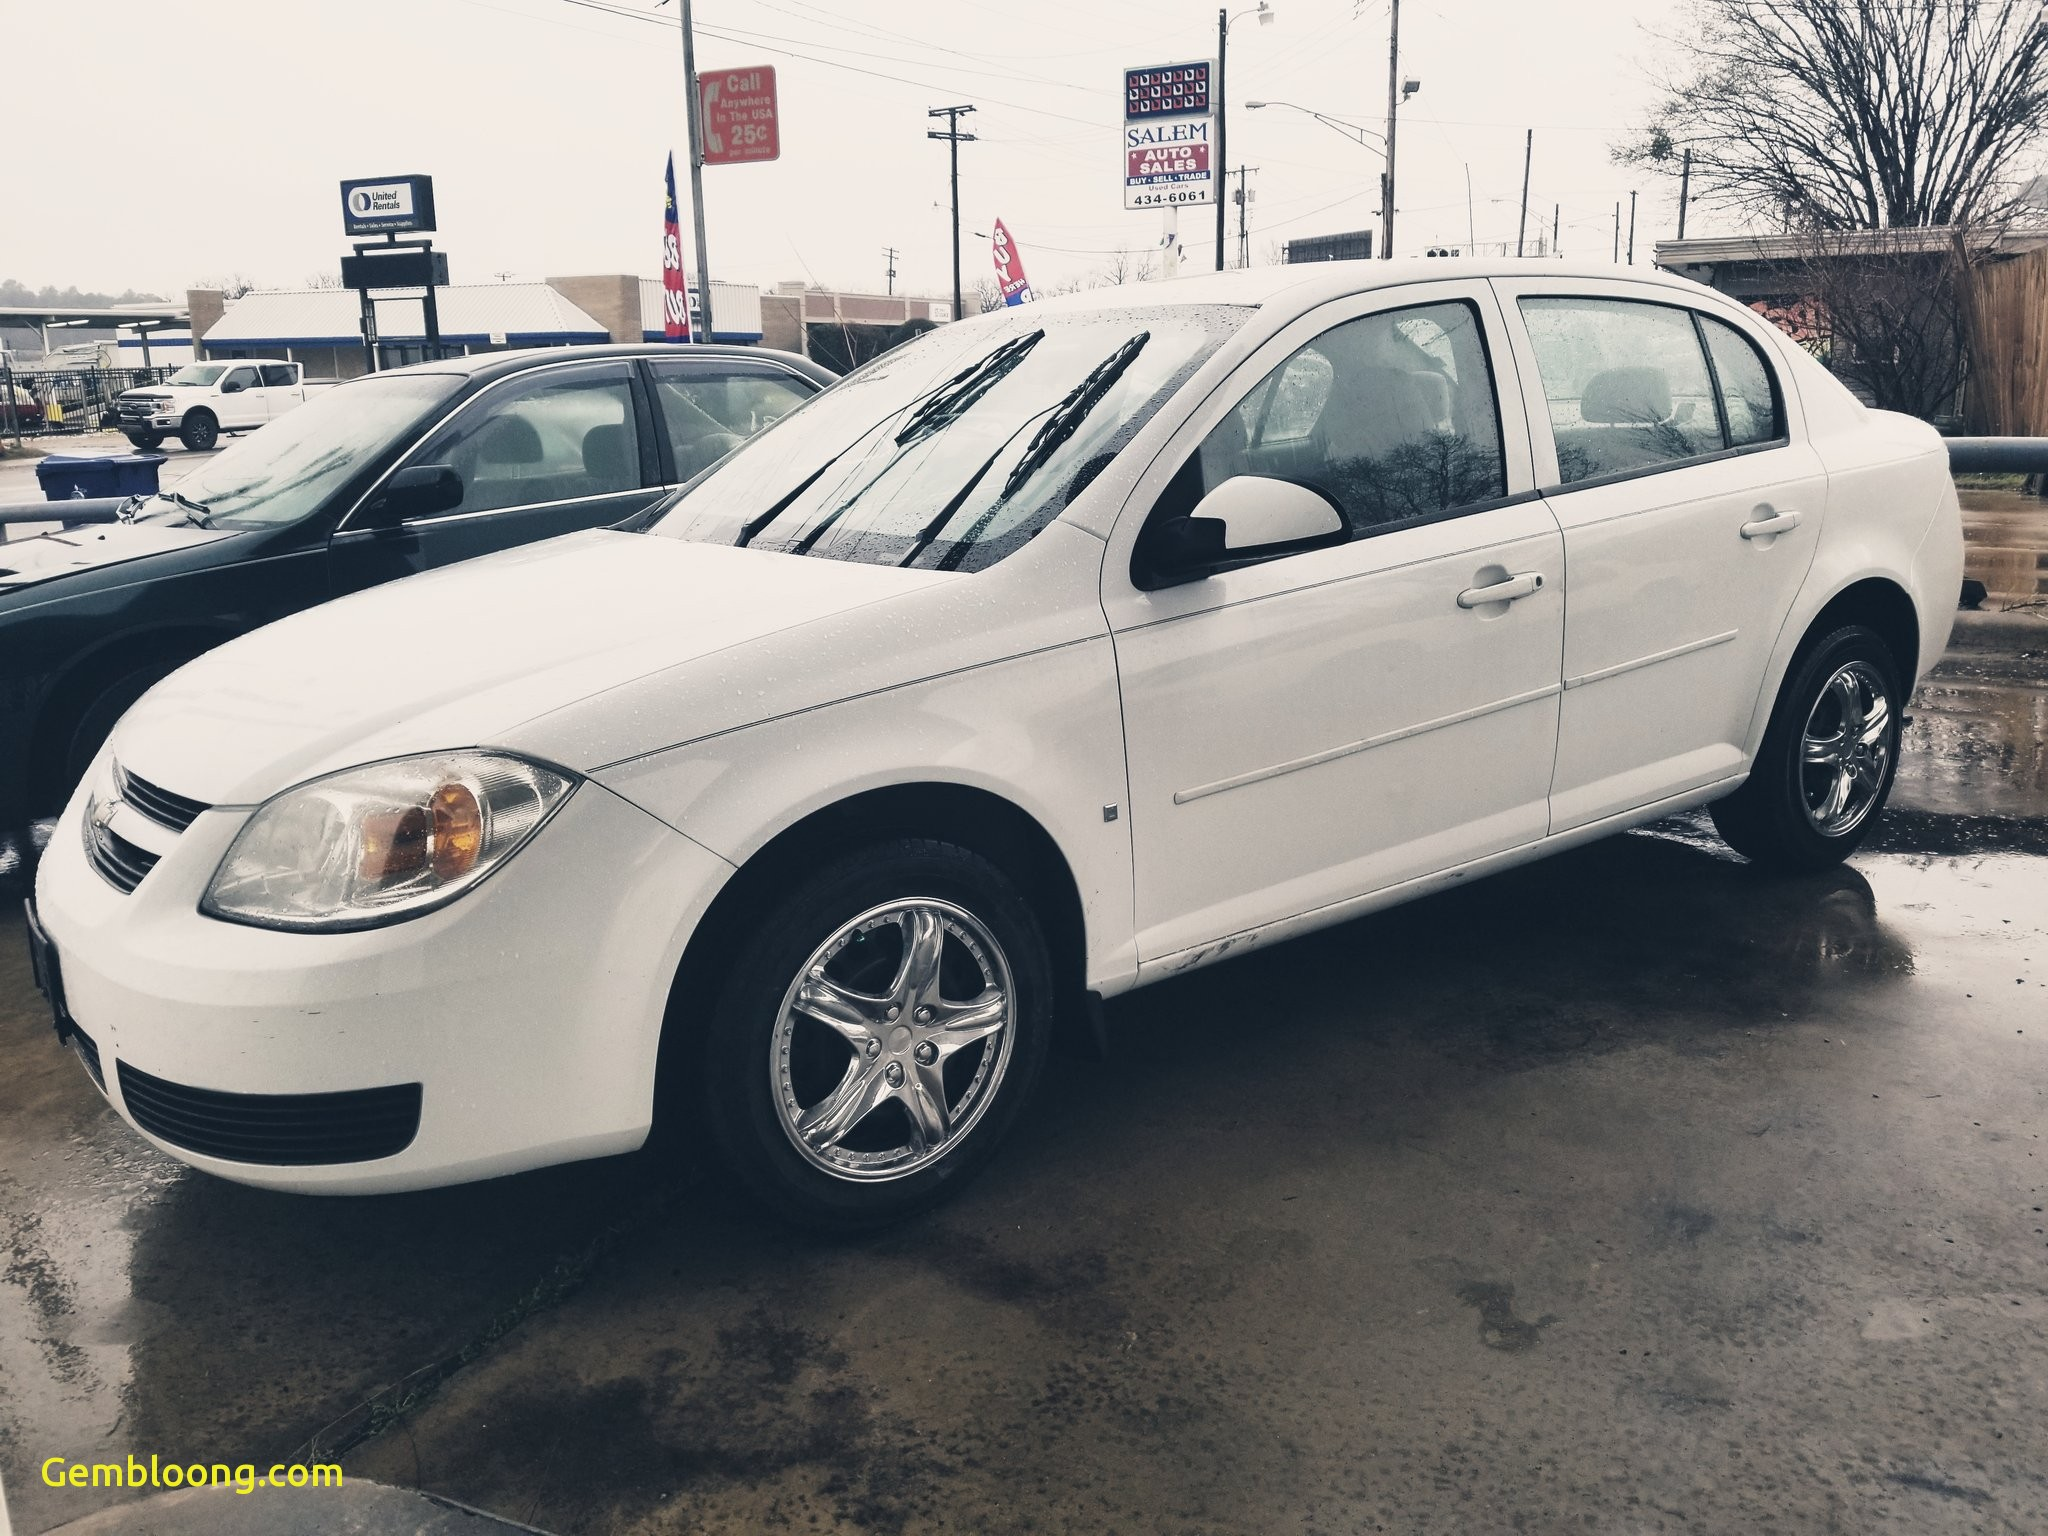 gallery of best of white cars for sale near me